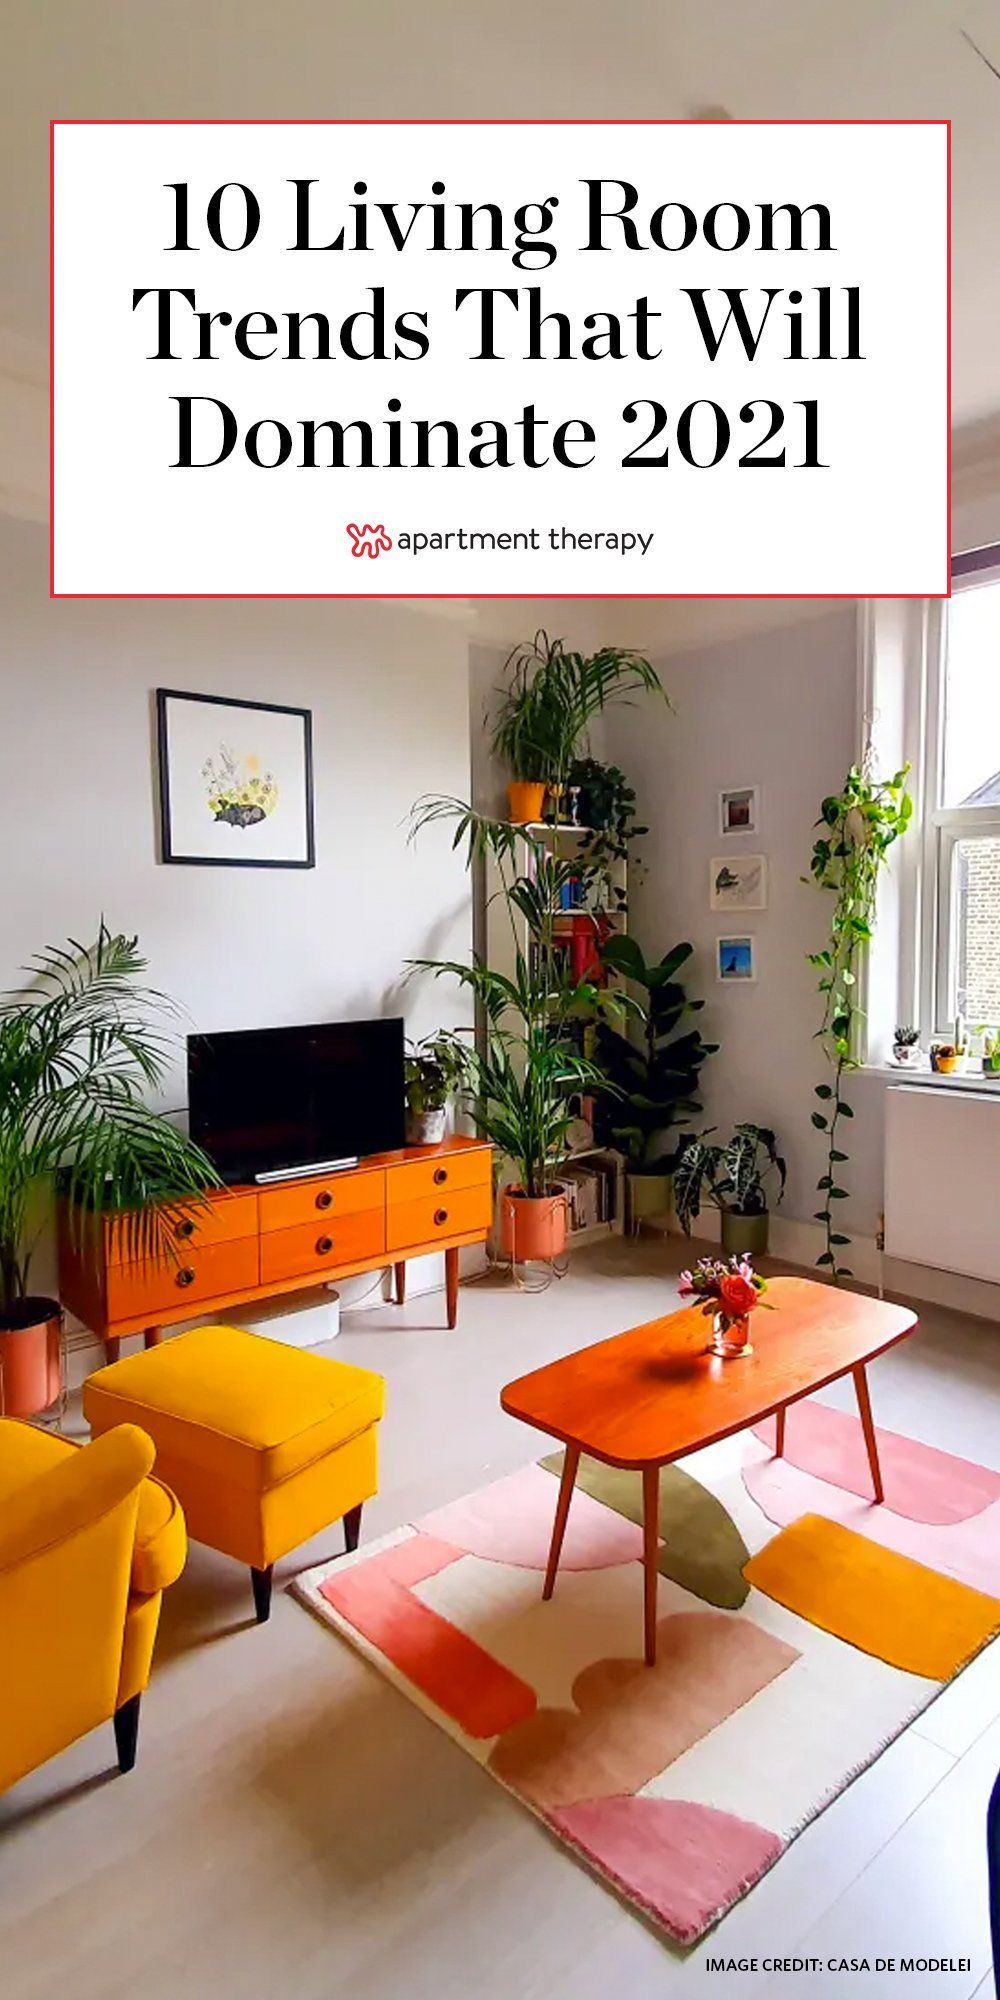 10 Living Room Trends That Will Dominate 2021 According To Designers Home Room Design Living Room Decor Apartment Living Room Trends